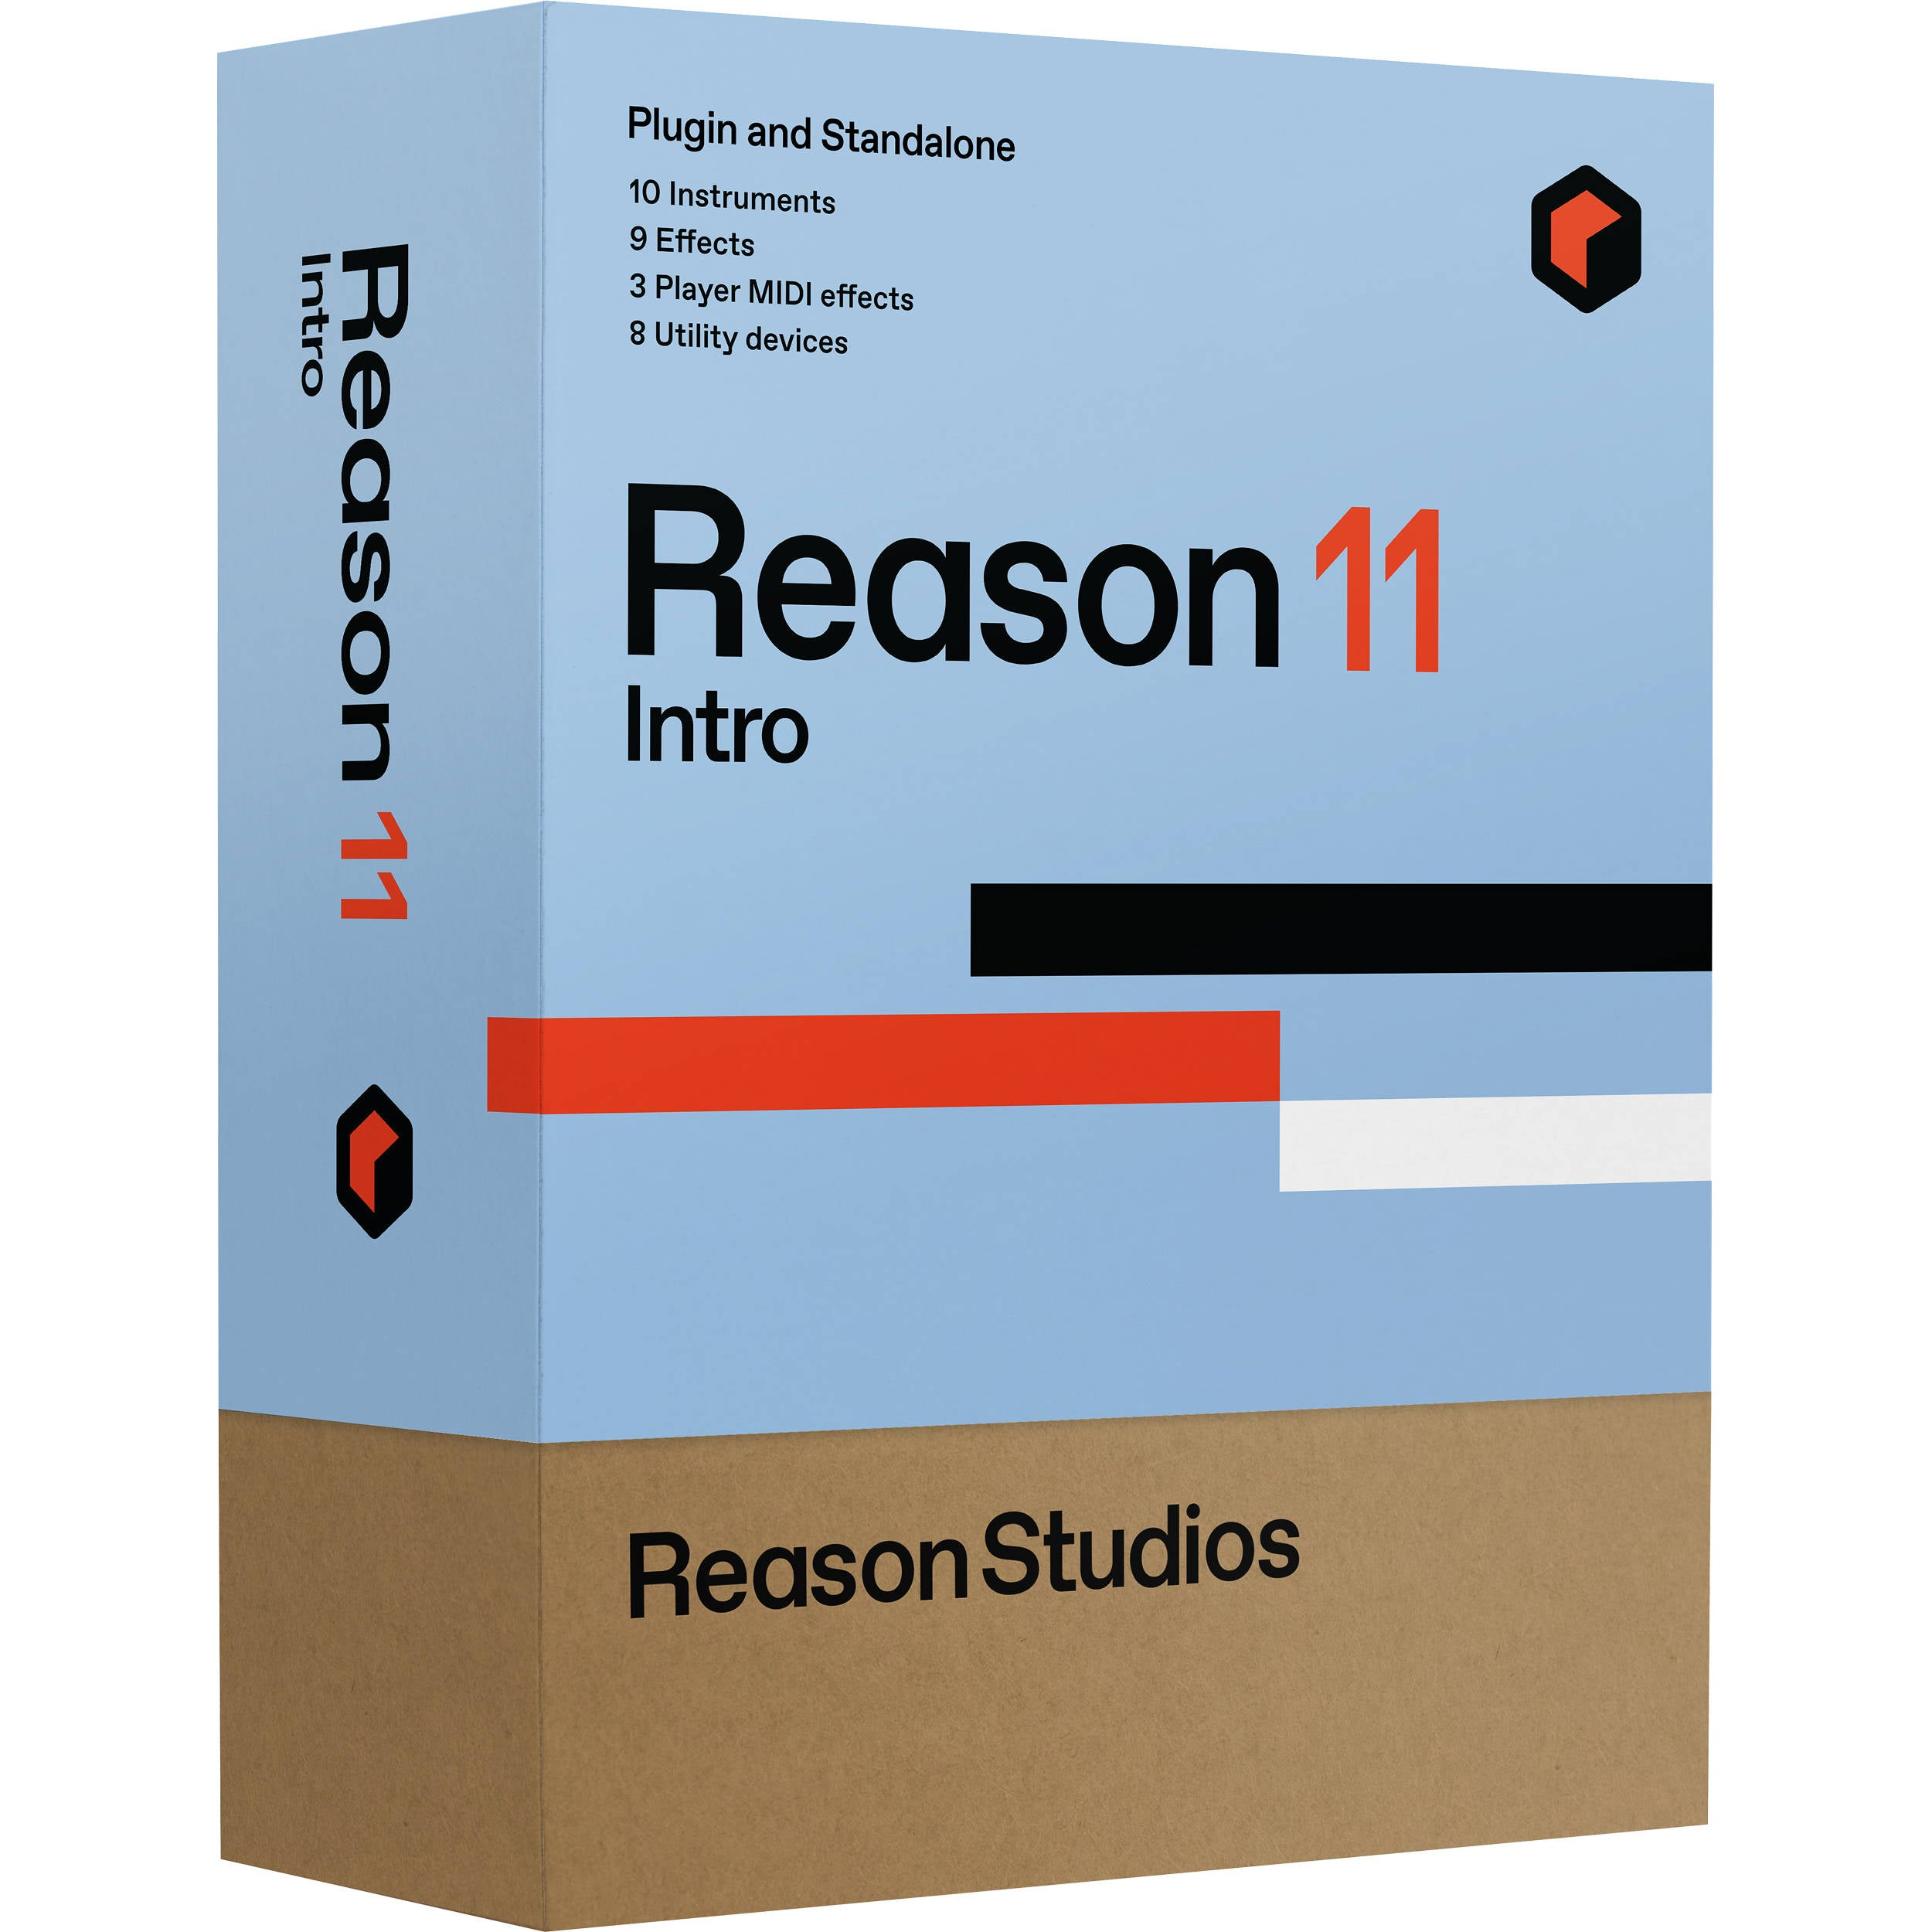 Propellerhead Reason 11 Intro